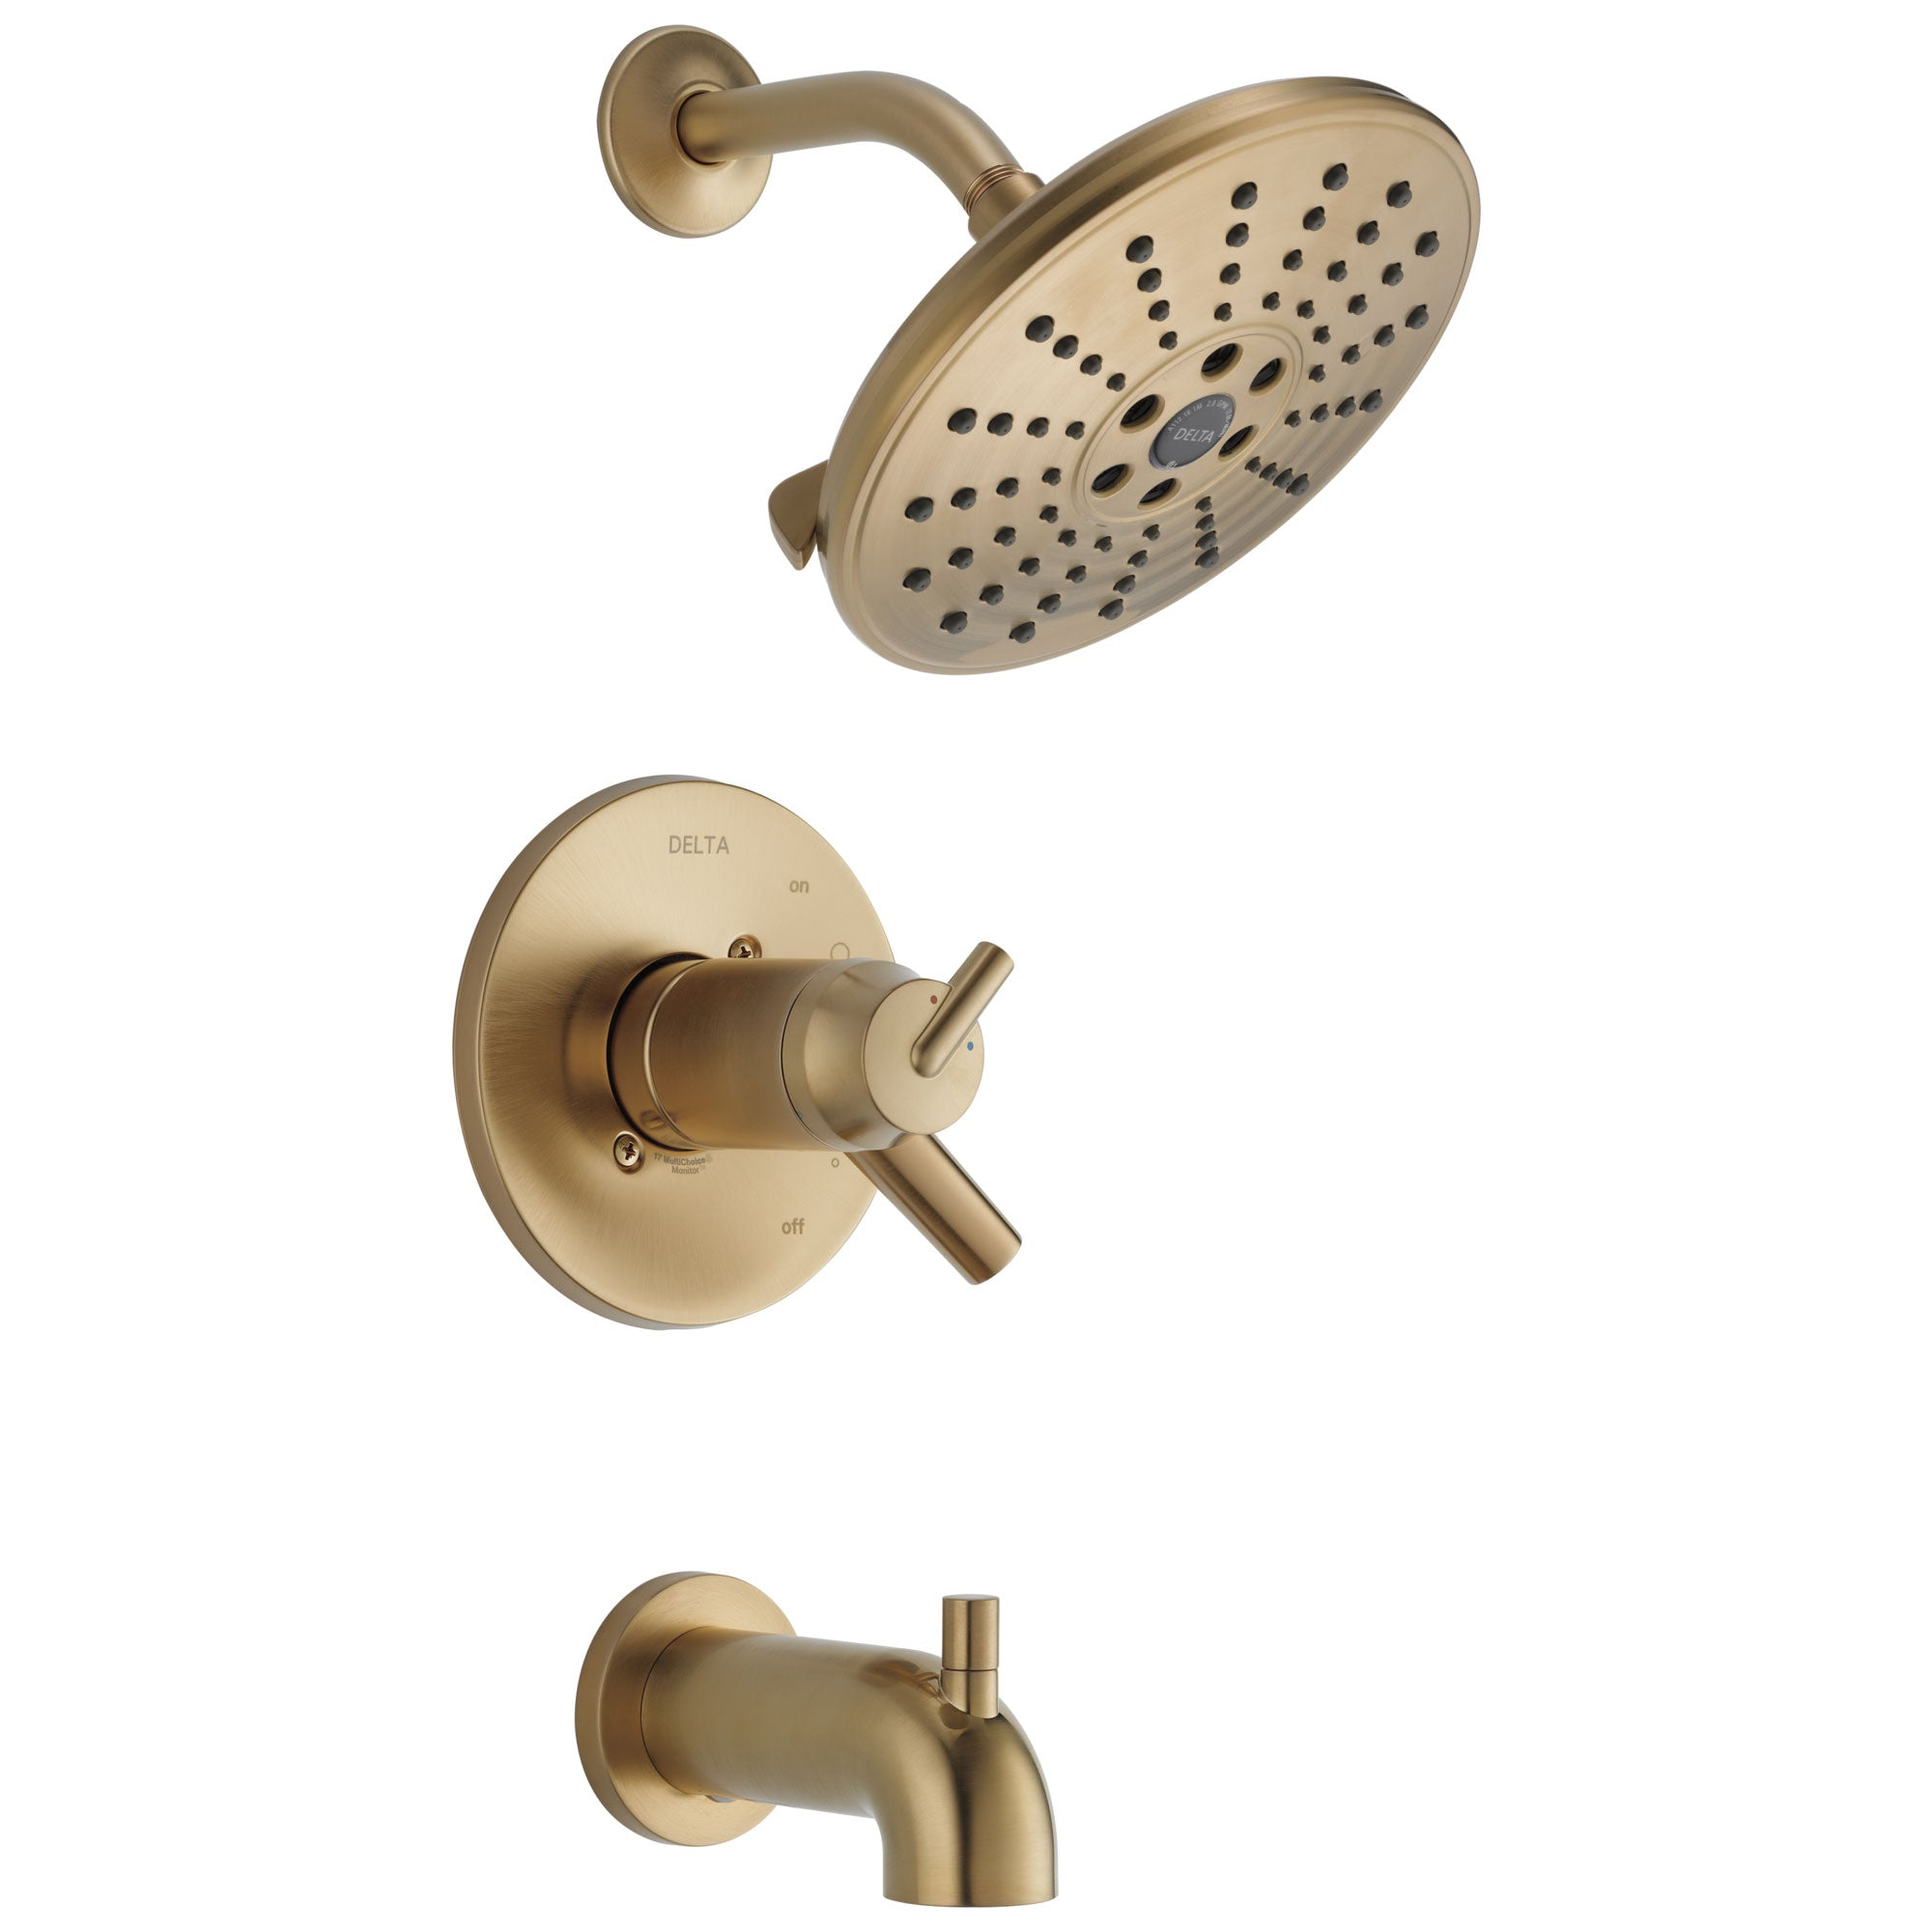 Delta Trinsic Collection Champagne Bronze TempAssure 17T Series Watersense Thermostatic Tub T Shower Combo Faucet Includes Valve with Stops D2236V